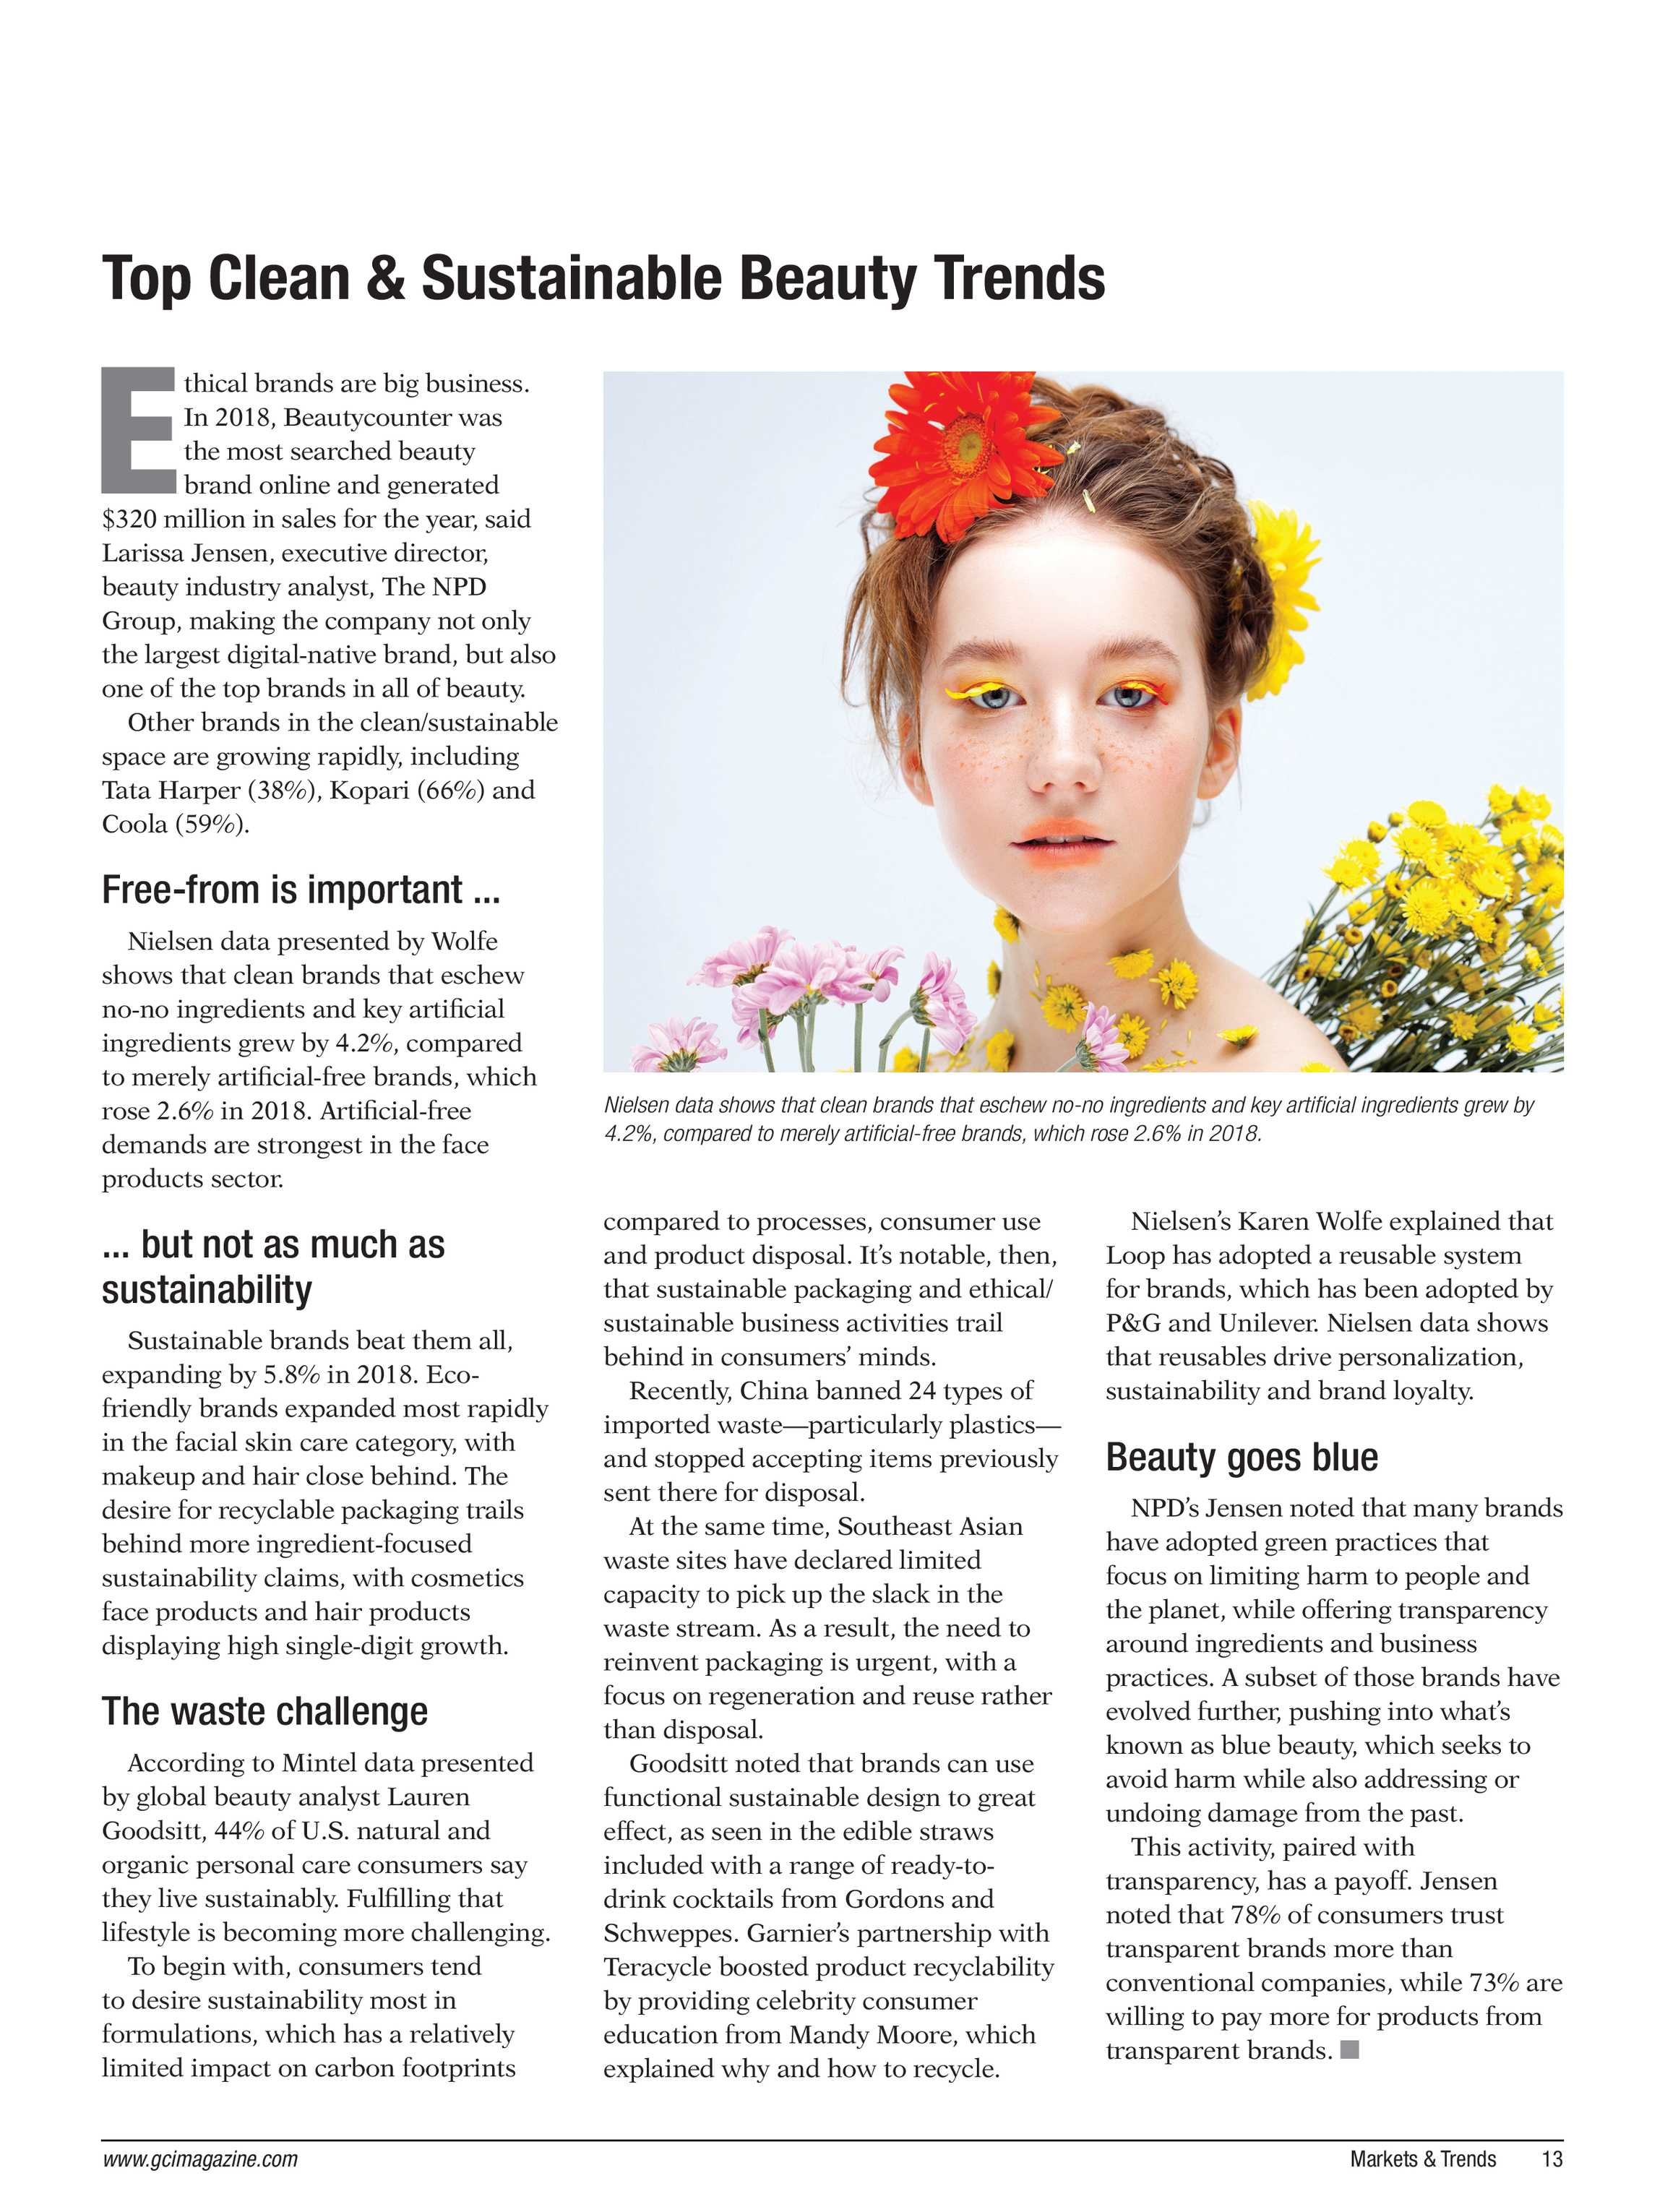 Global Cosmetic Industry Magazine - April 2019 - page 12